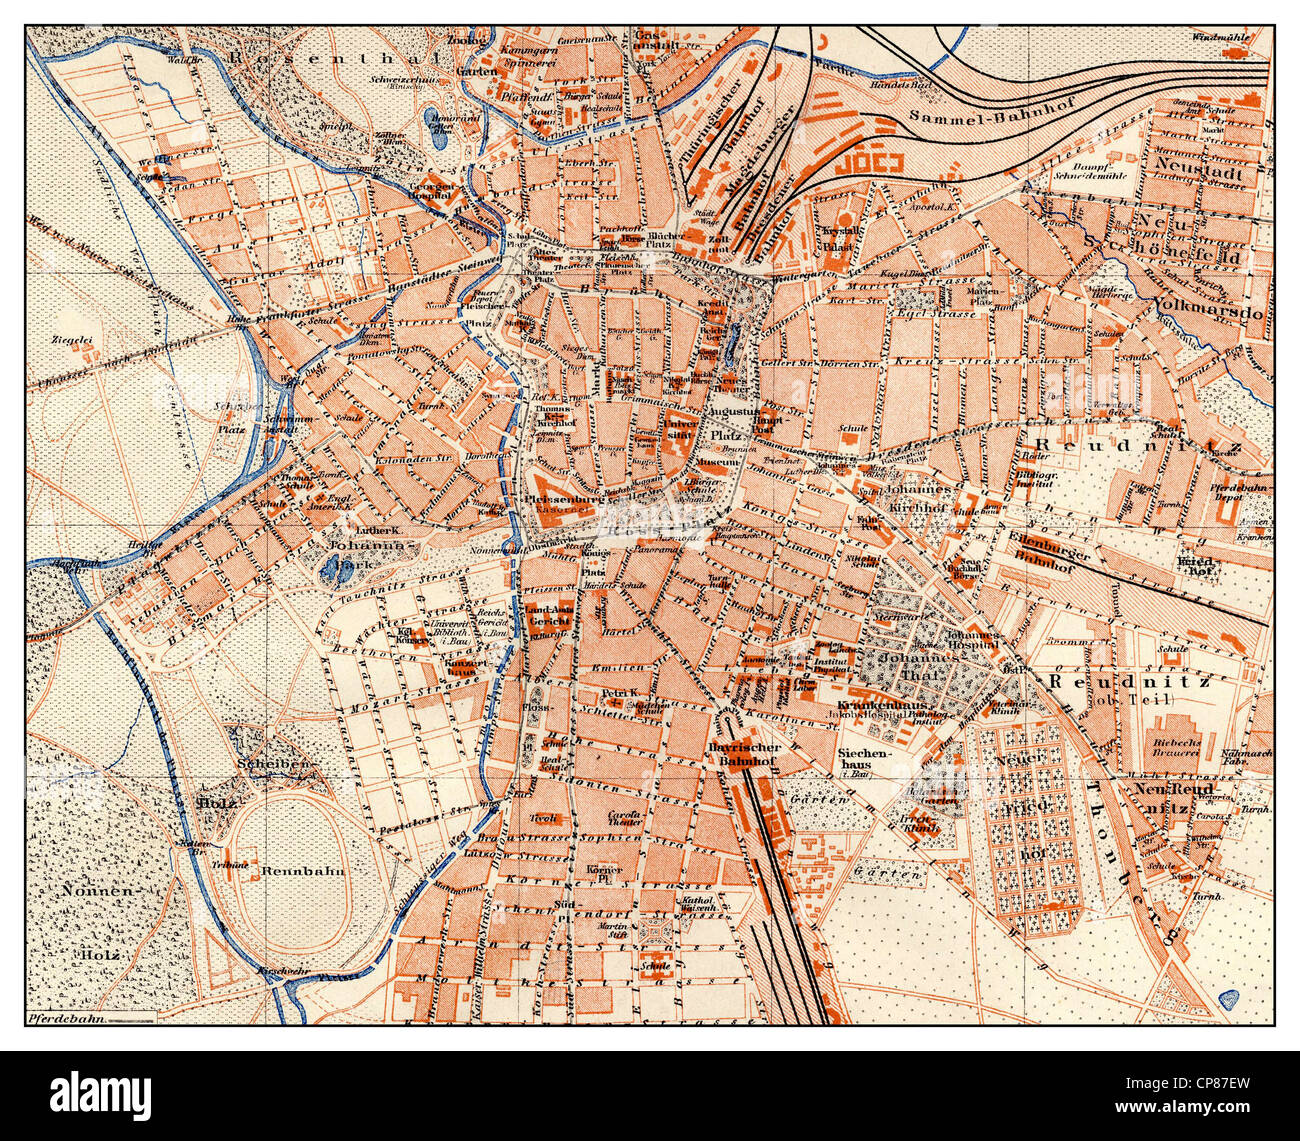 Map Of Germany Th Century Stock Photos Map Of Germany Th - Map of leipzig